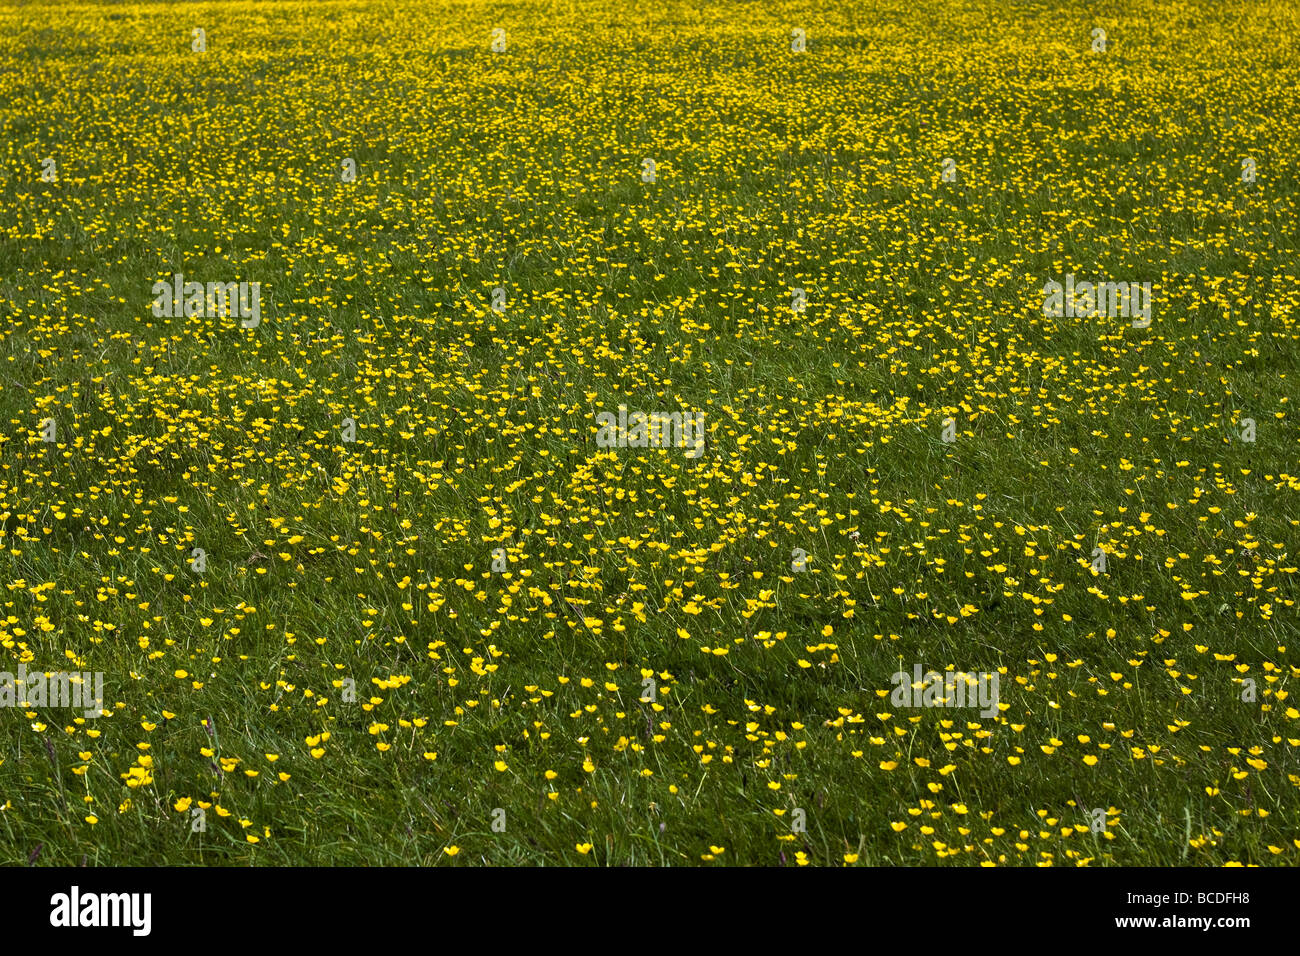 Green Pasture Filled With Little Yellow Flowers Stock Photo